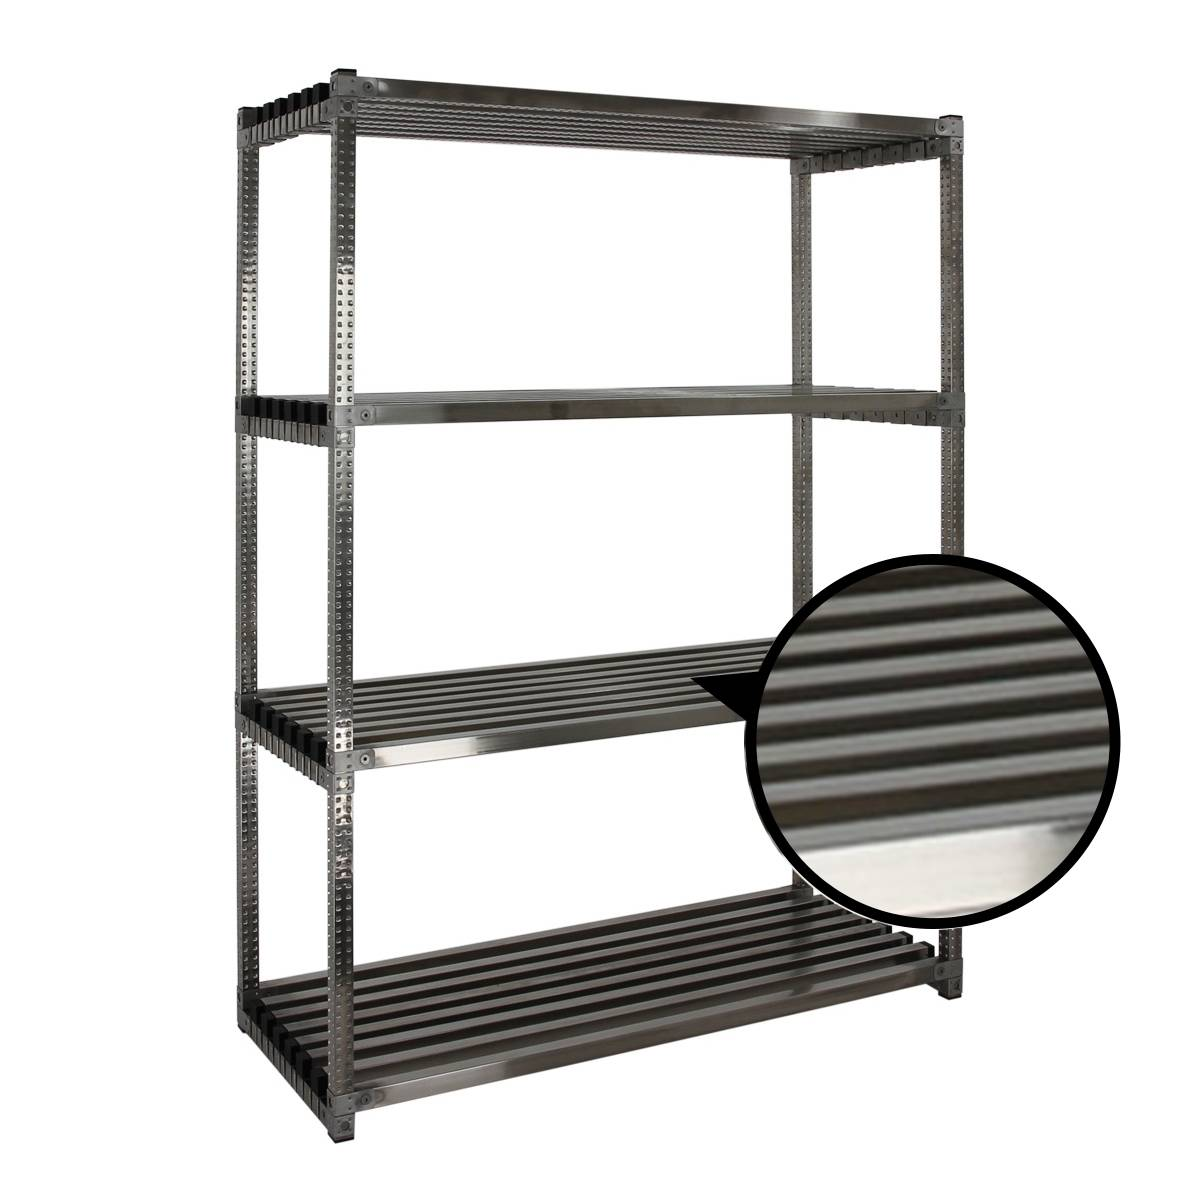 Axess Industries Rayonnage alimentaire inox à tablettes tubulaires   Long. utile 1497 mm   Pro...